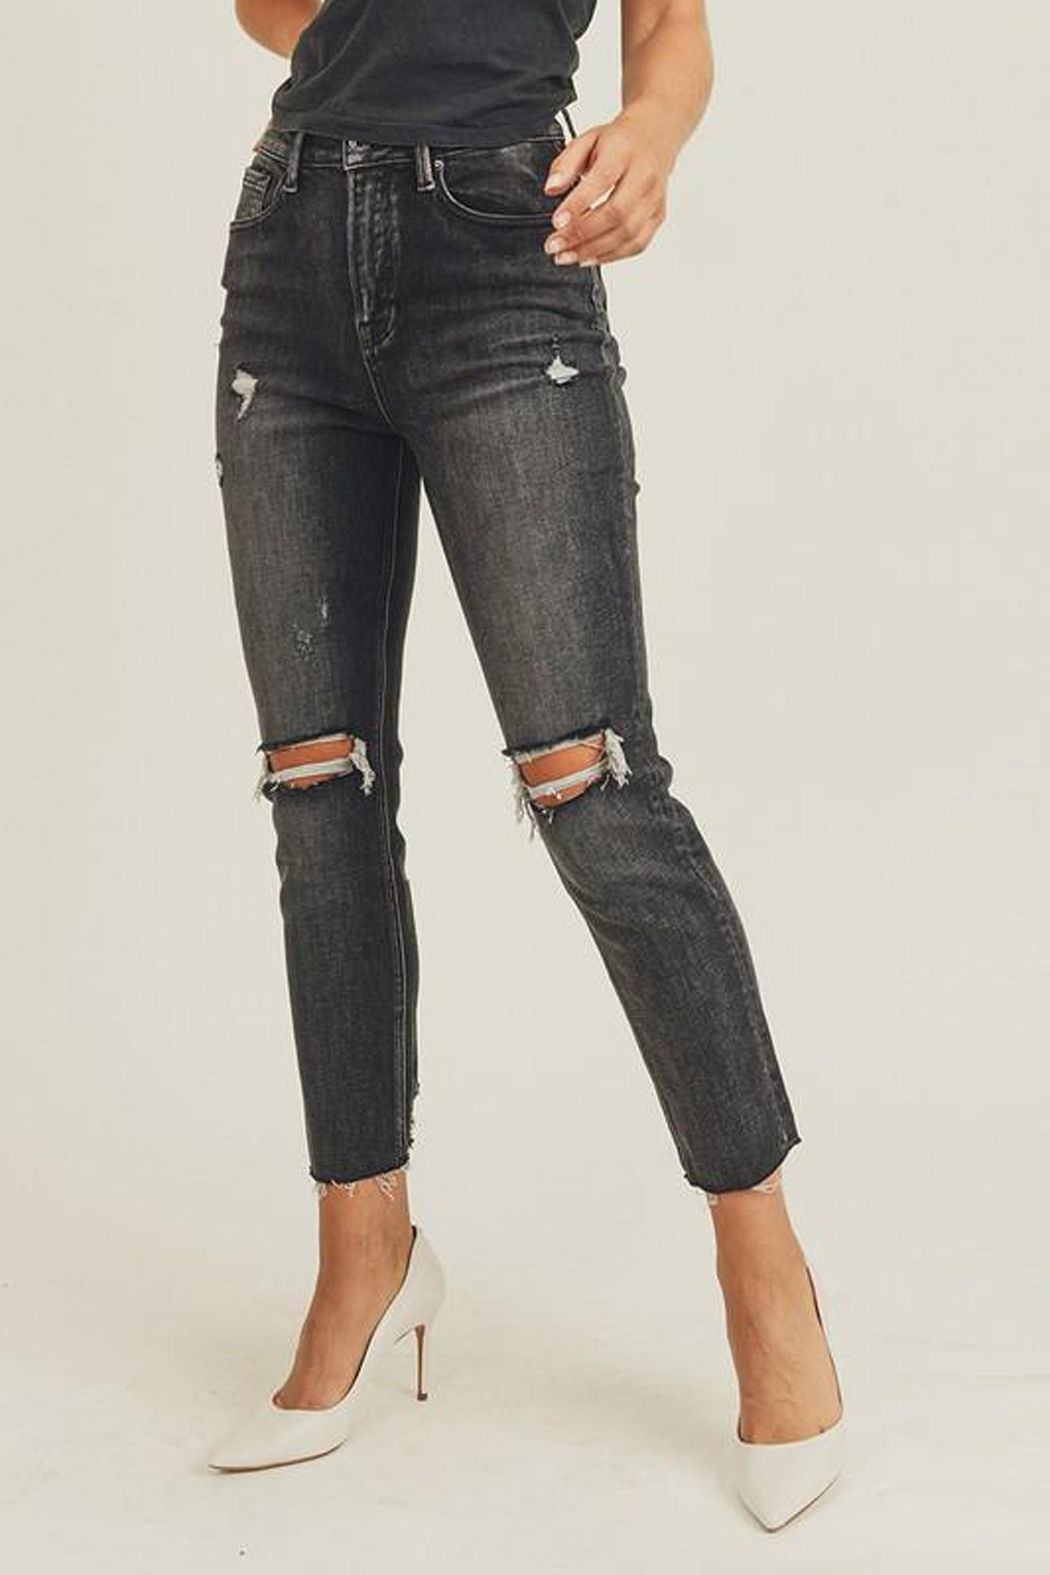 Risen Jeans  Black-Vintage-Wash Distressed Denim - Side Cropped Image